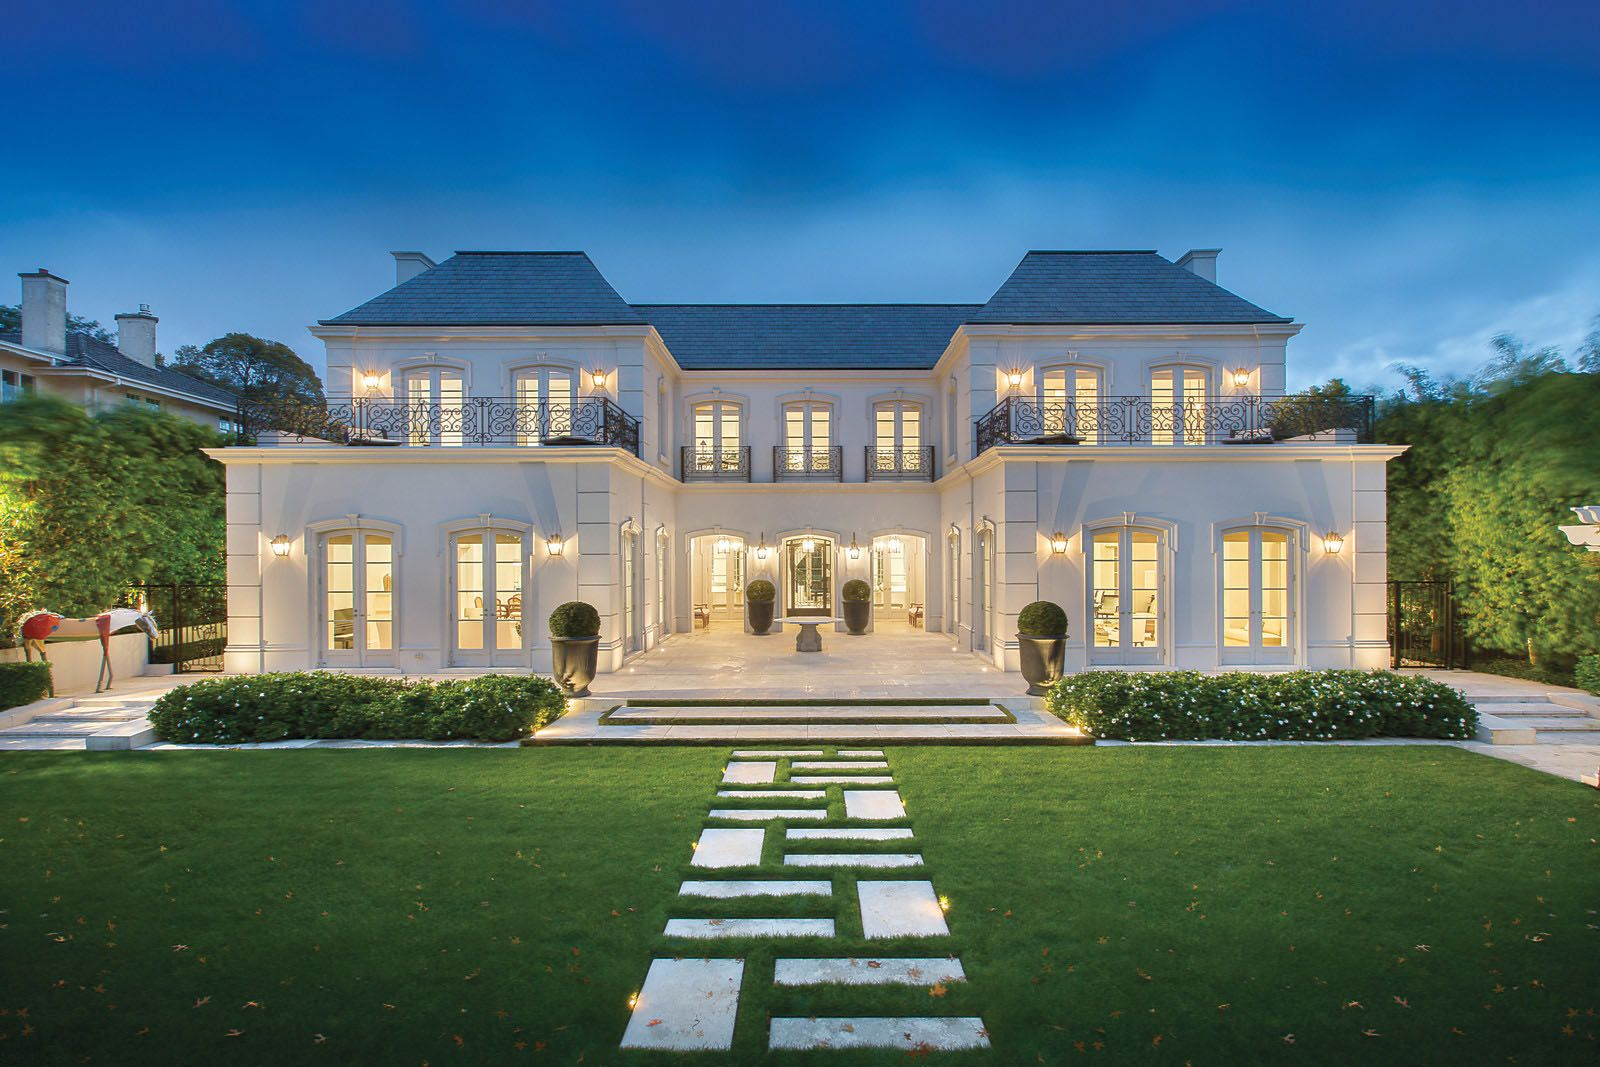 Timeless Luxury Mansion With Classical French Architecture